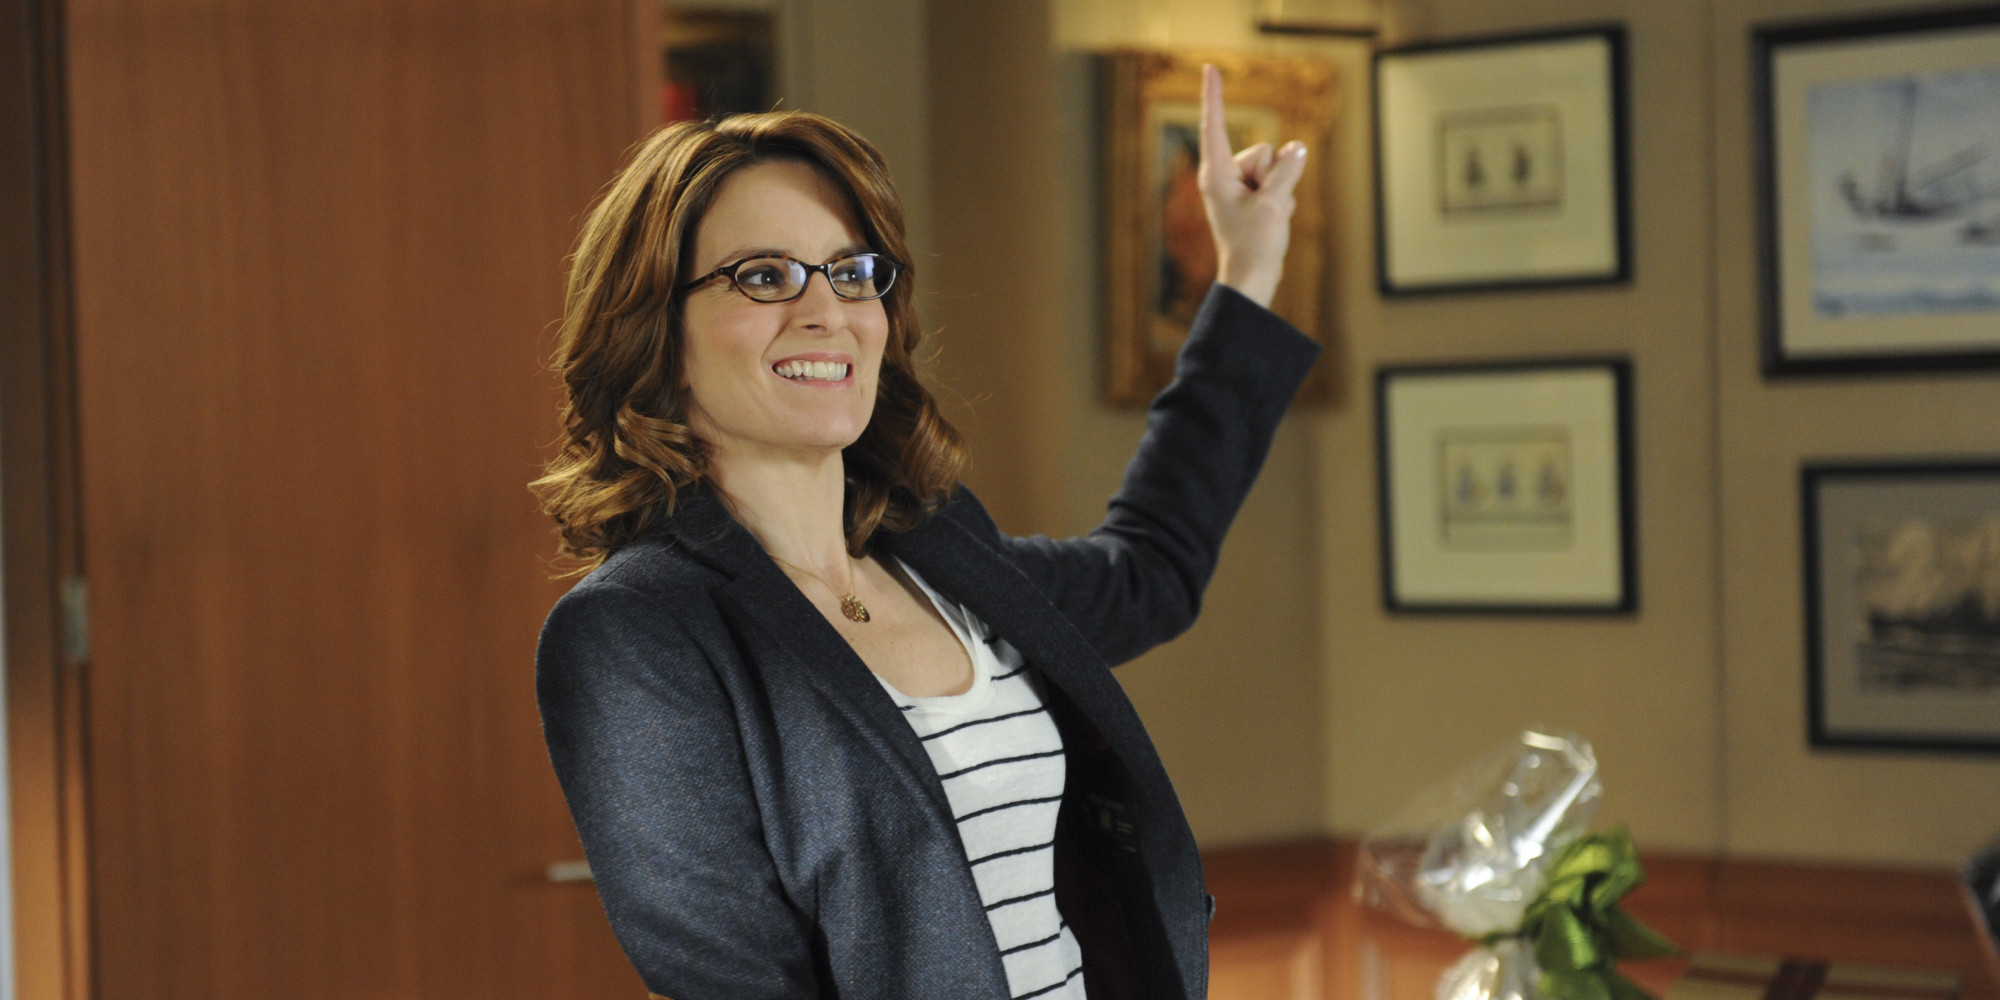 Tina Fey's beautiful mind is bringing a brand new show to network TV